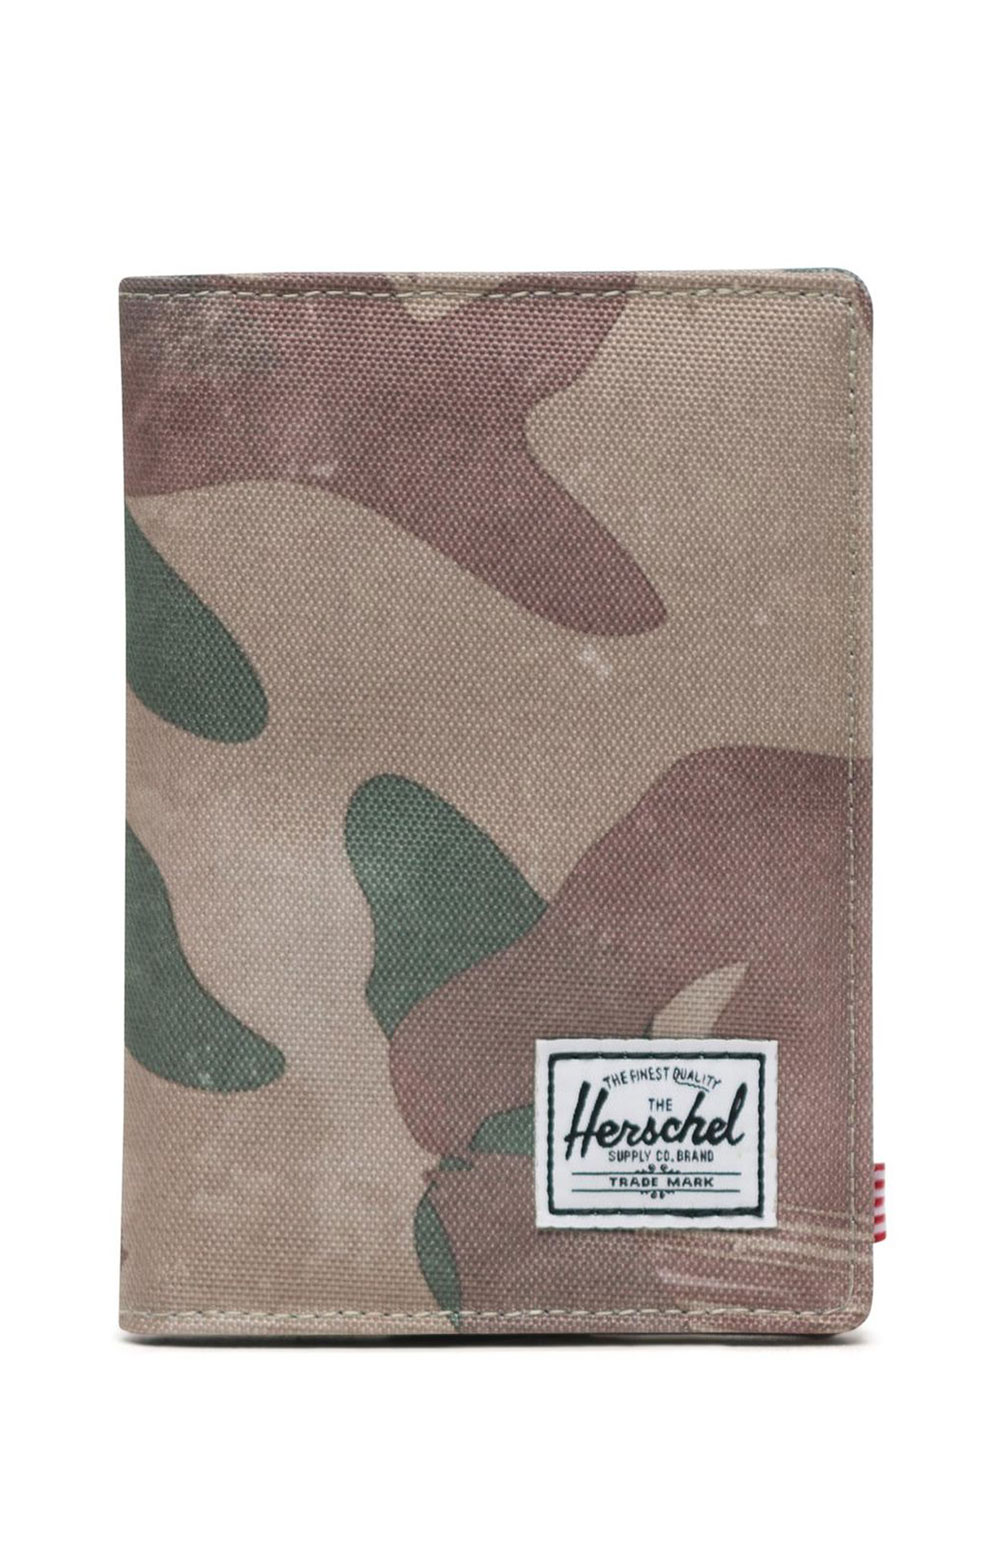 Raynor Passport Holder - Brushstroke Camo